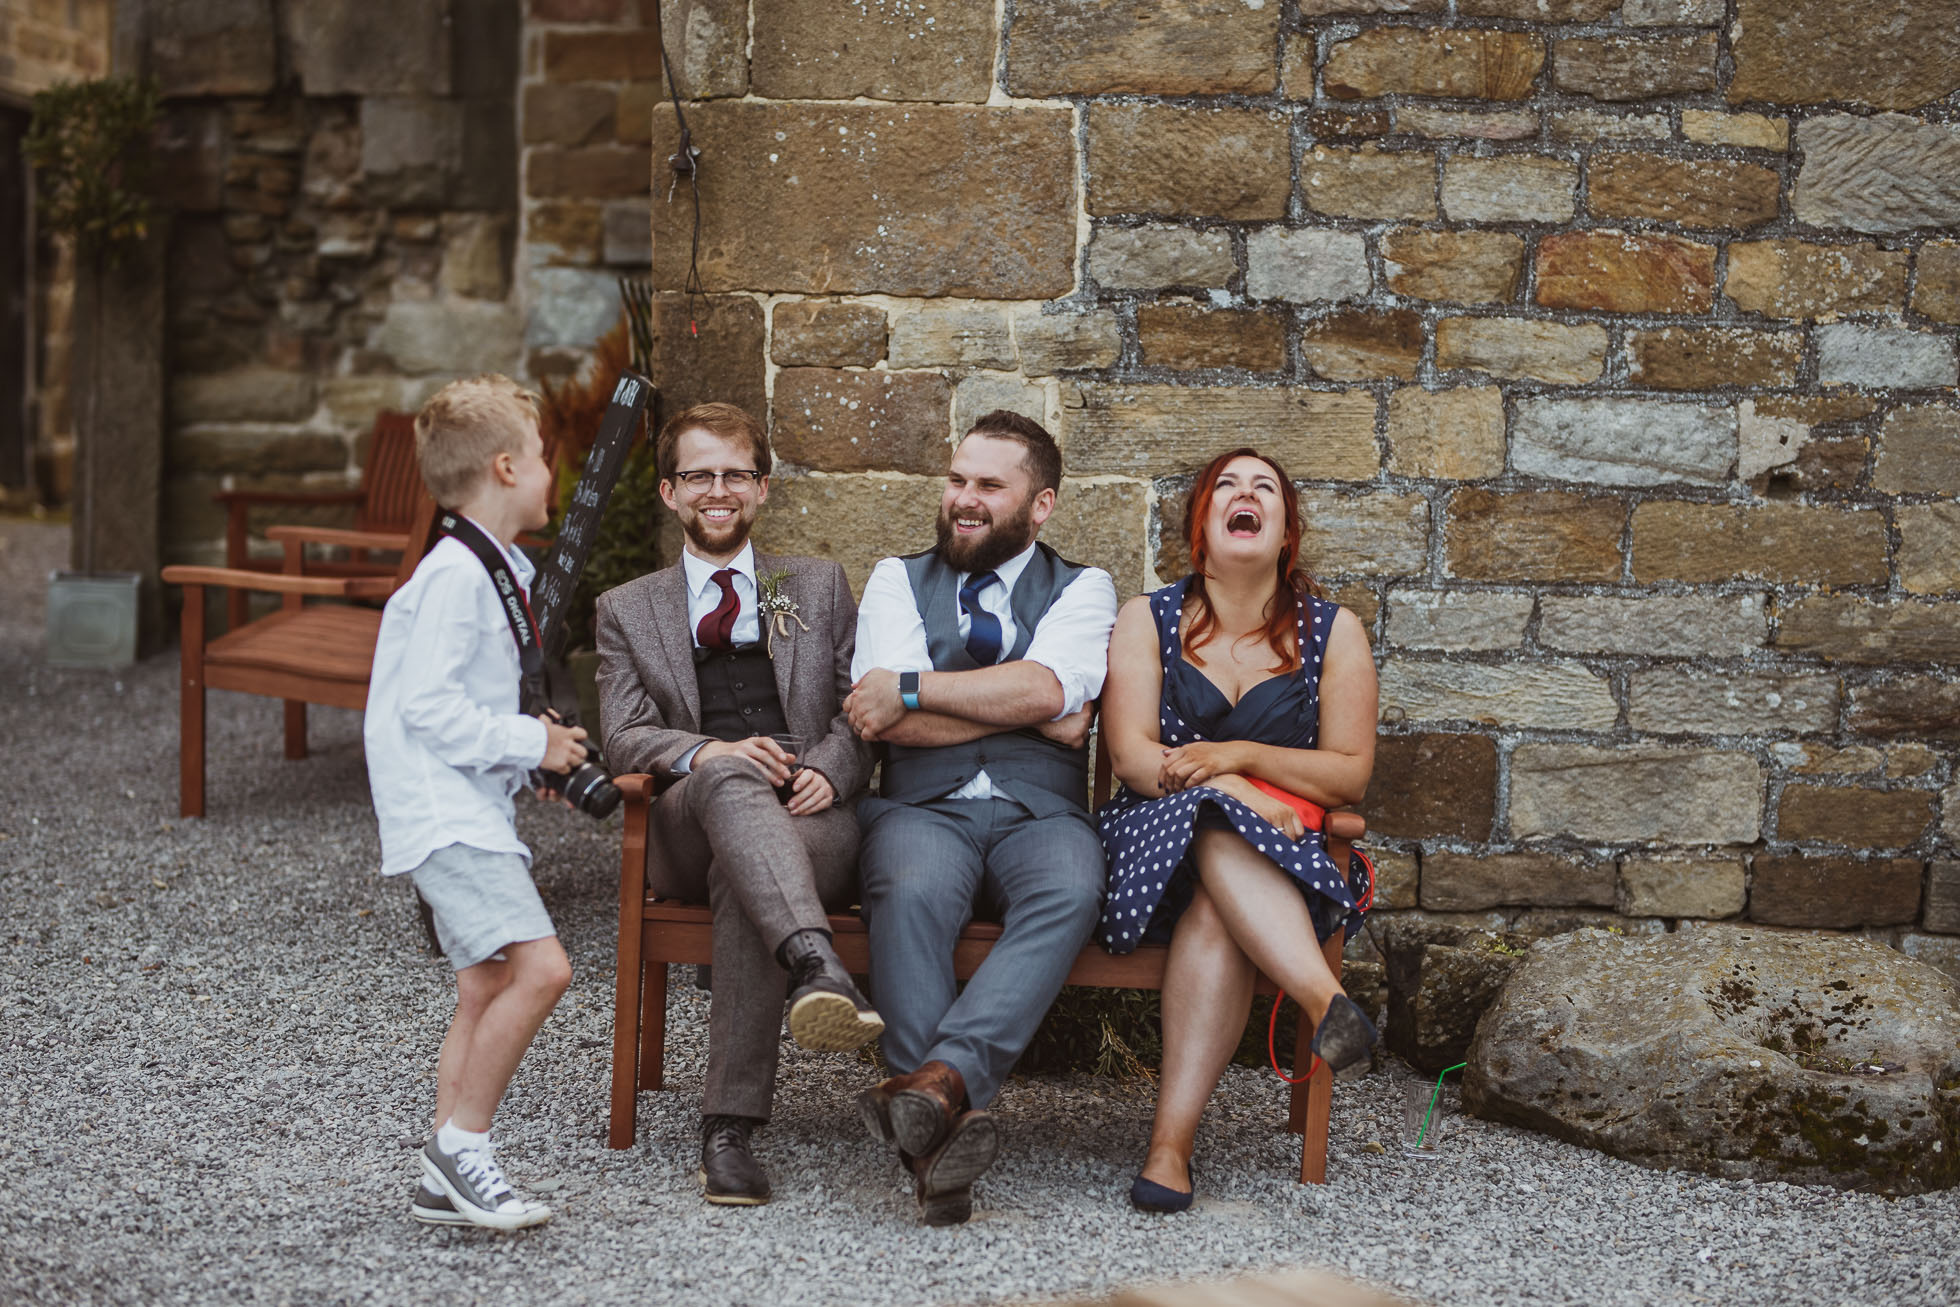 danby_castle_wedding_photographer-117.jpg